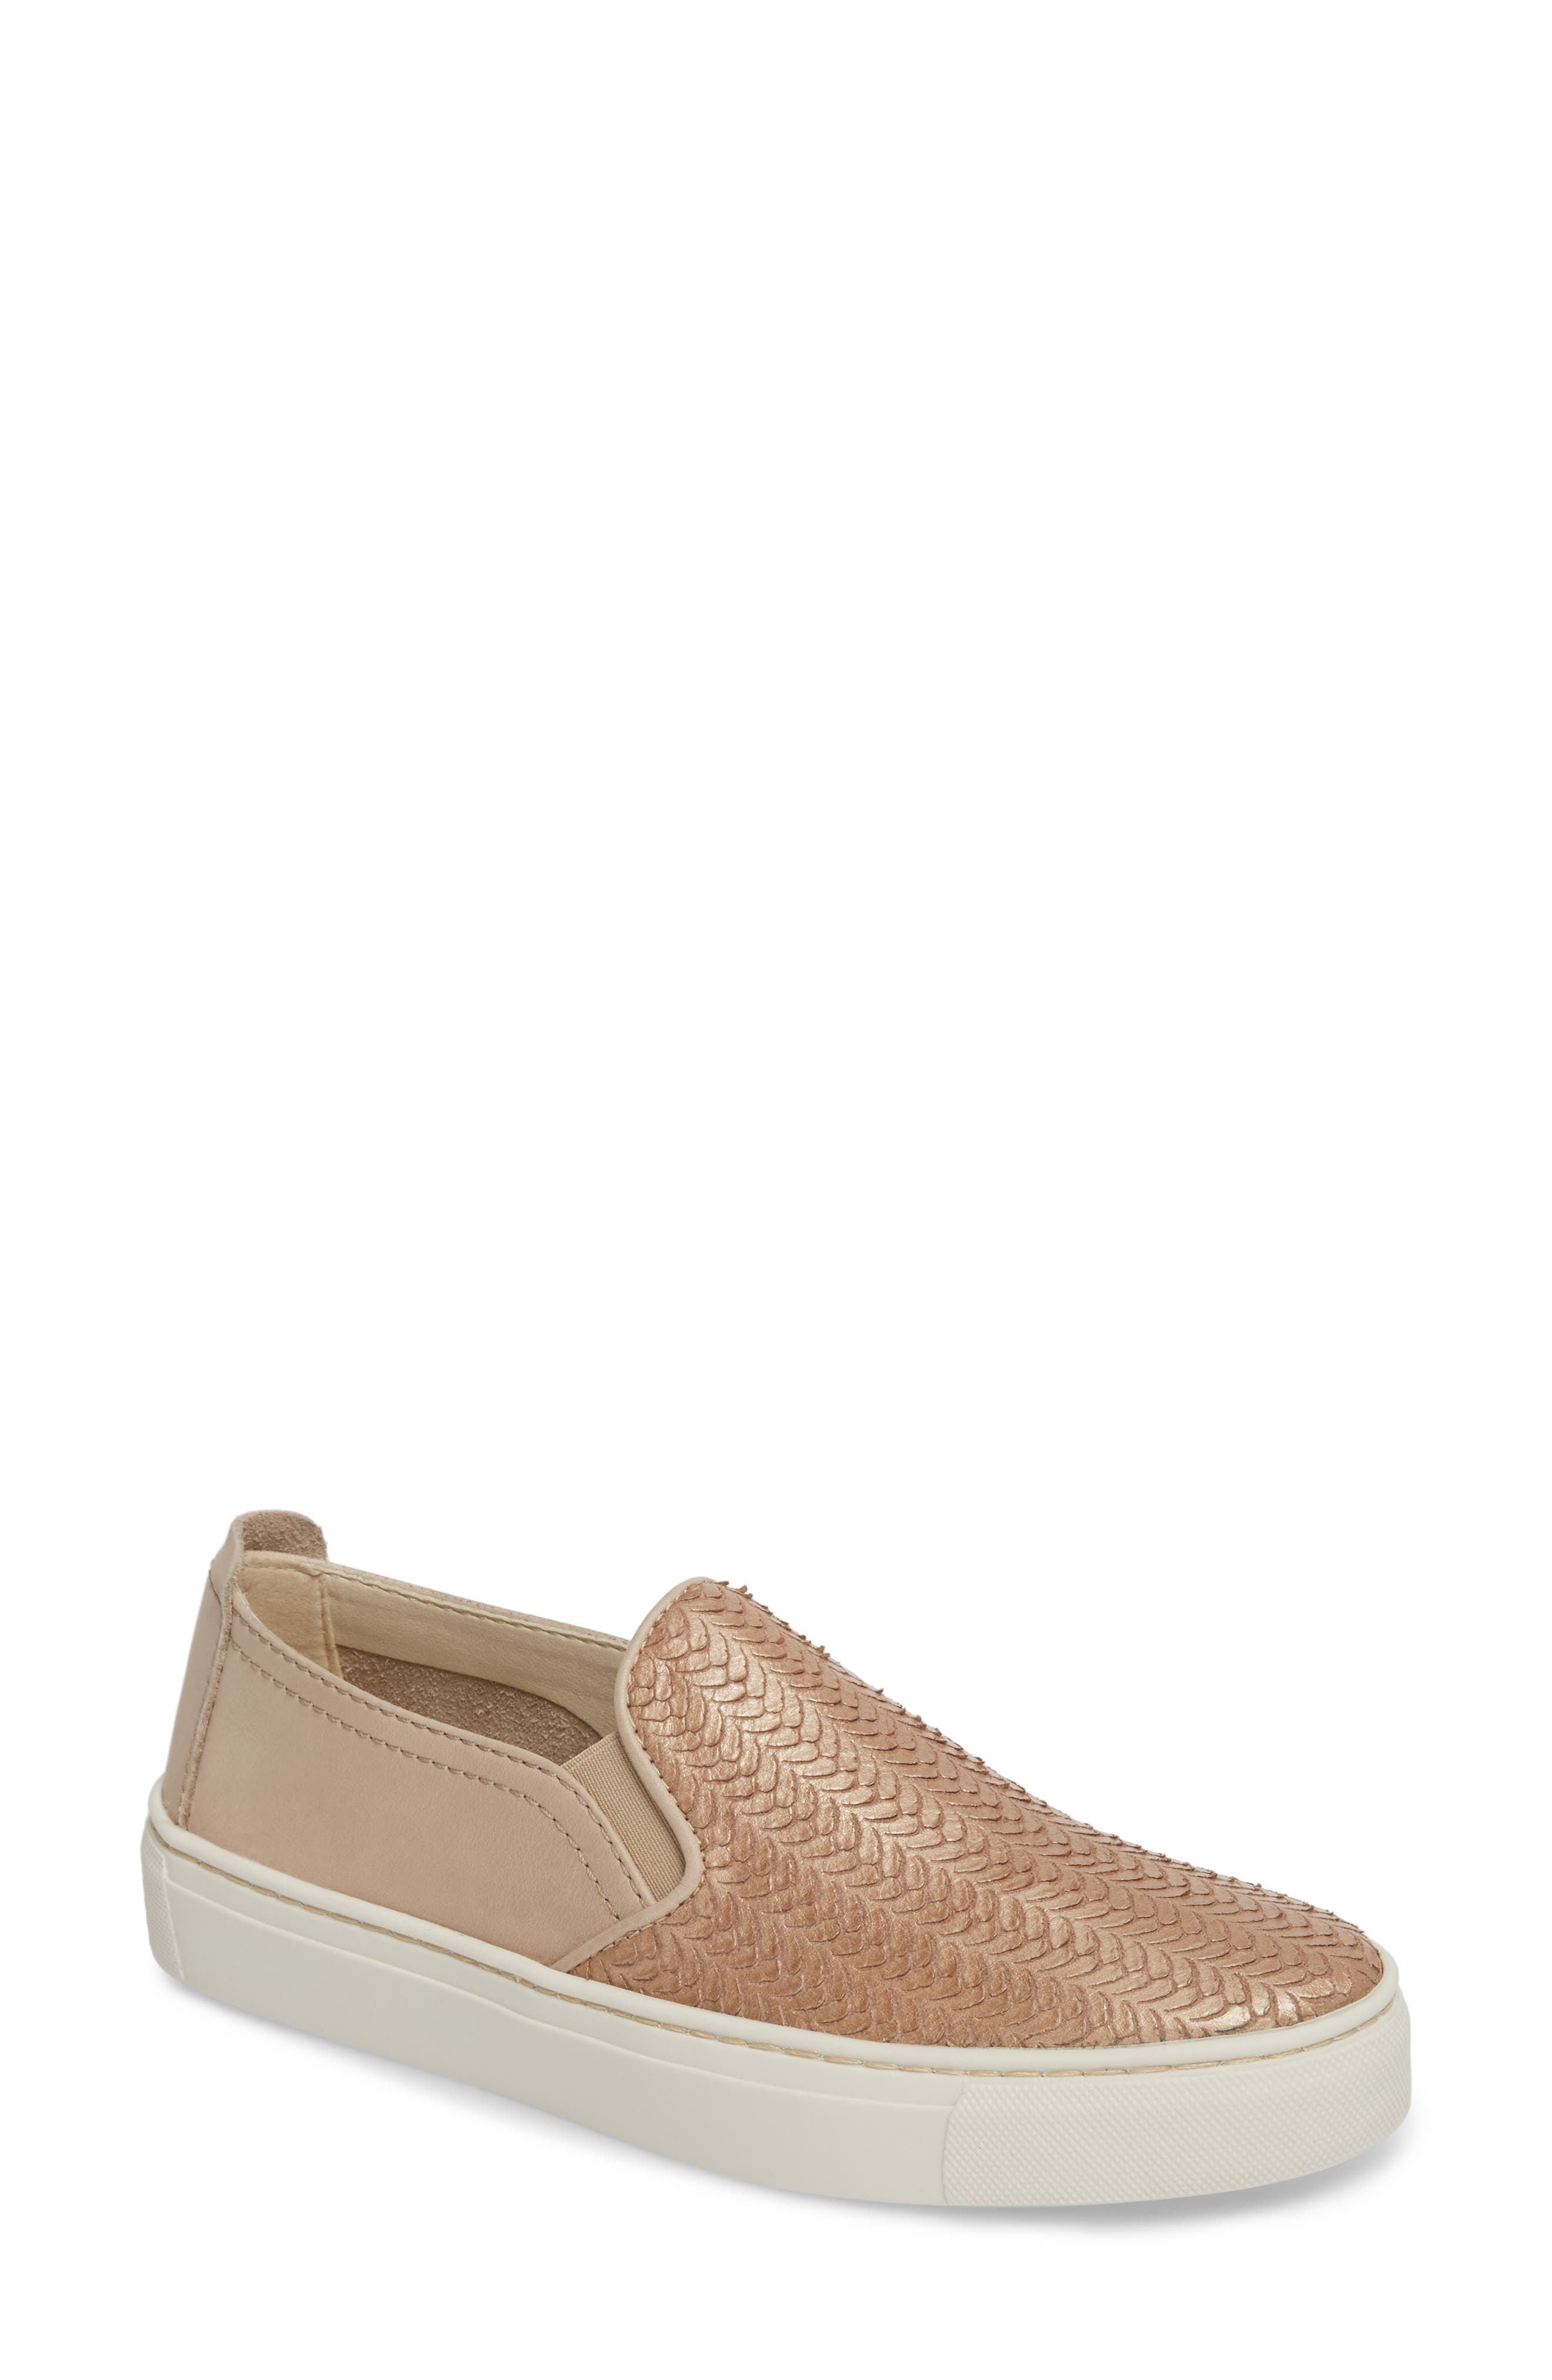 'Sneak Name' Sneaker,                         Main,                         color, GOLD/ DUNE LEATHER